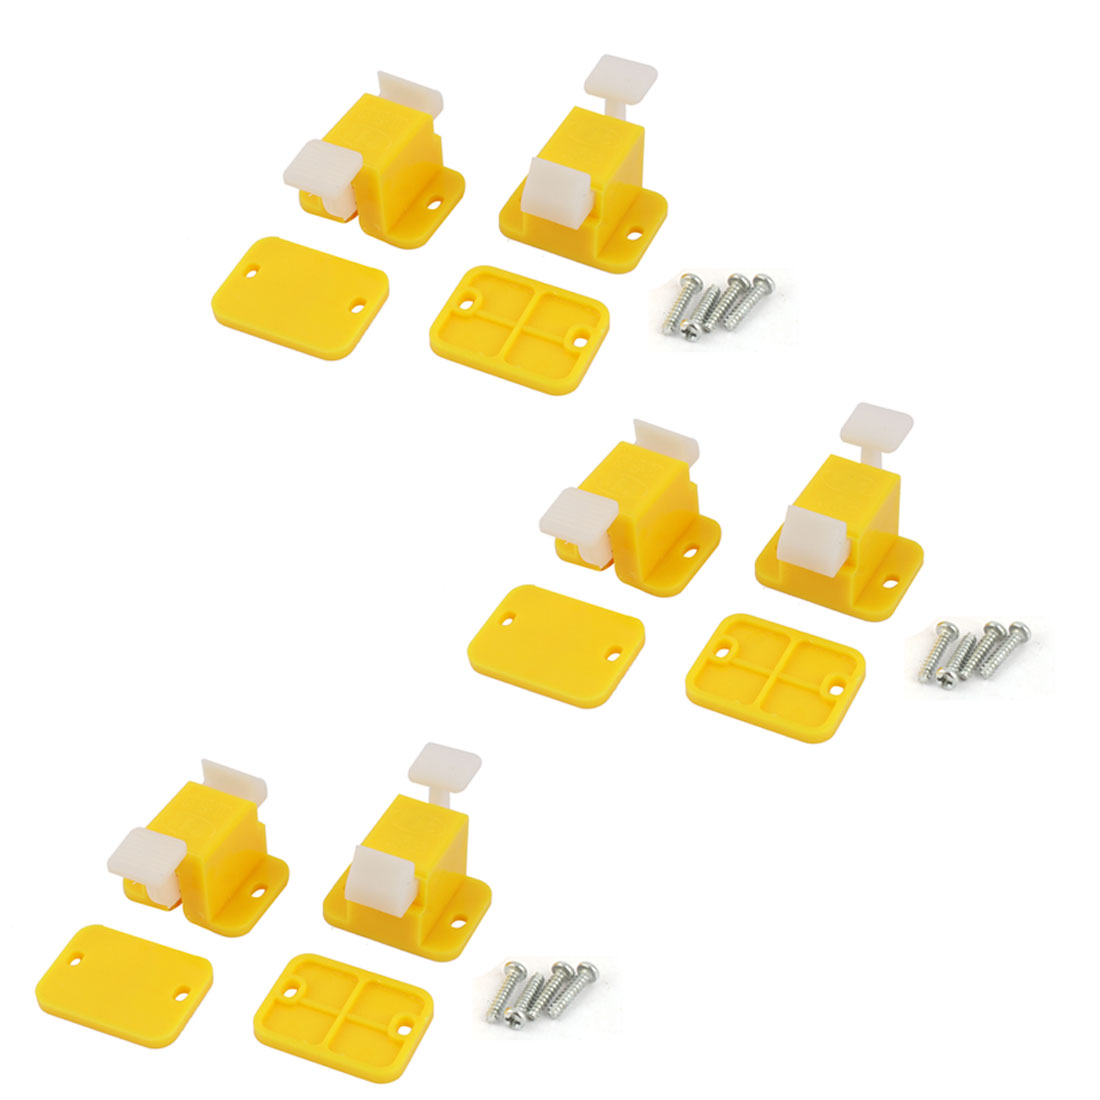 Unique Bargains 6 Pieces Plastic Prototype Test Fixture Jig Yellow White for PCB Board